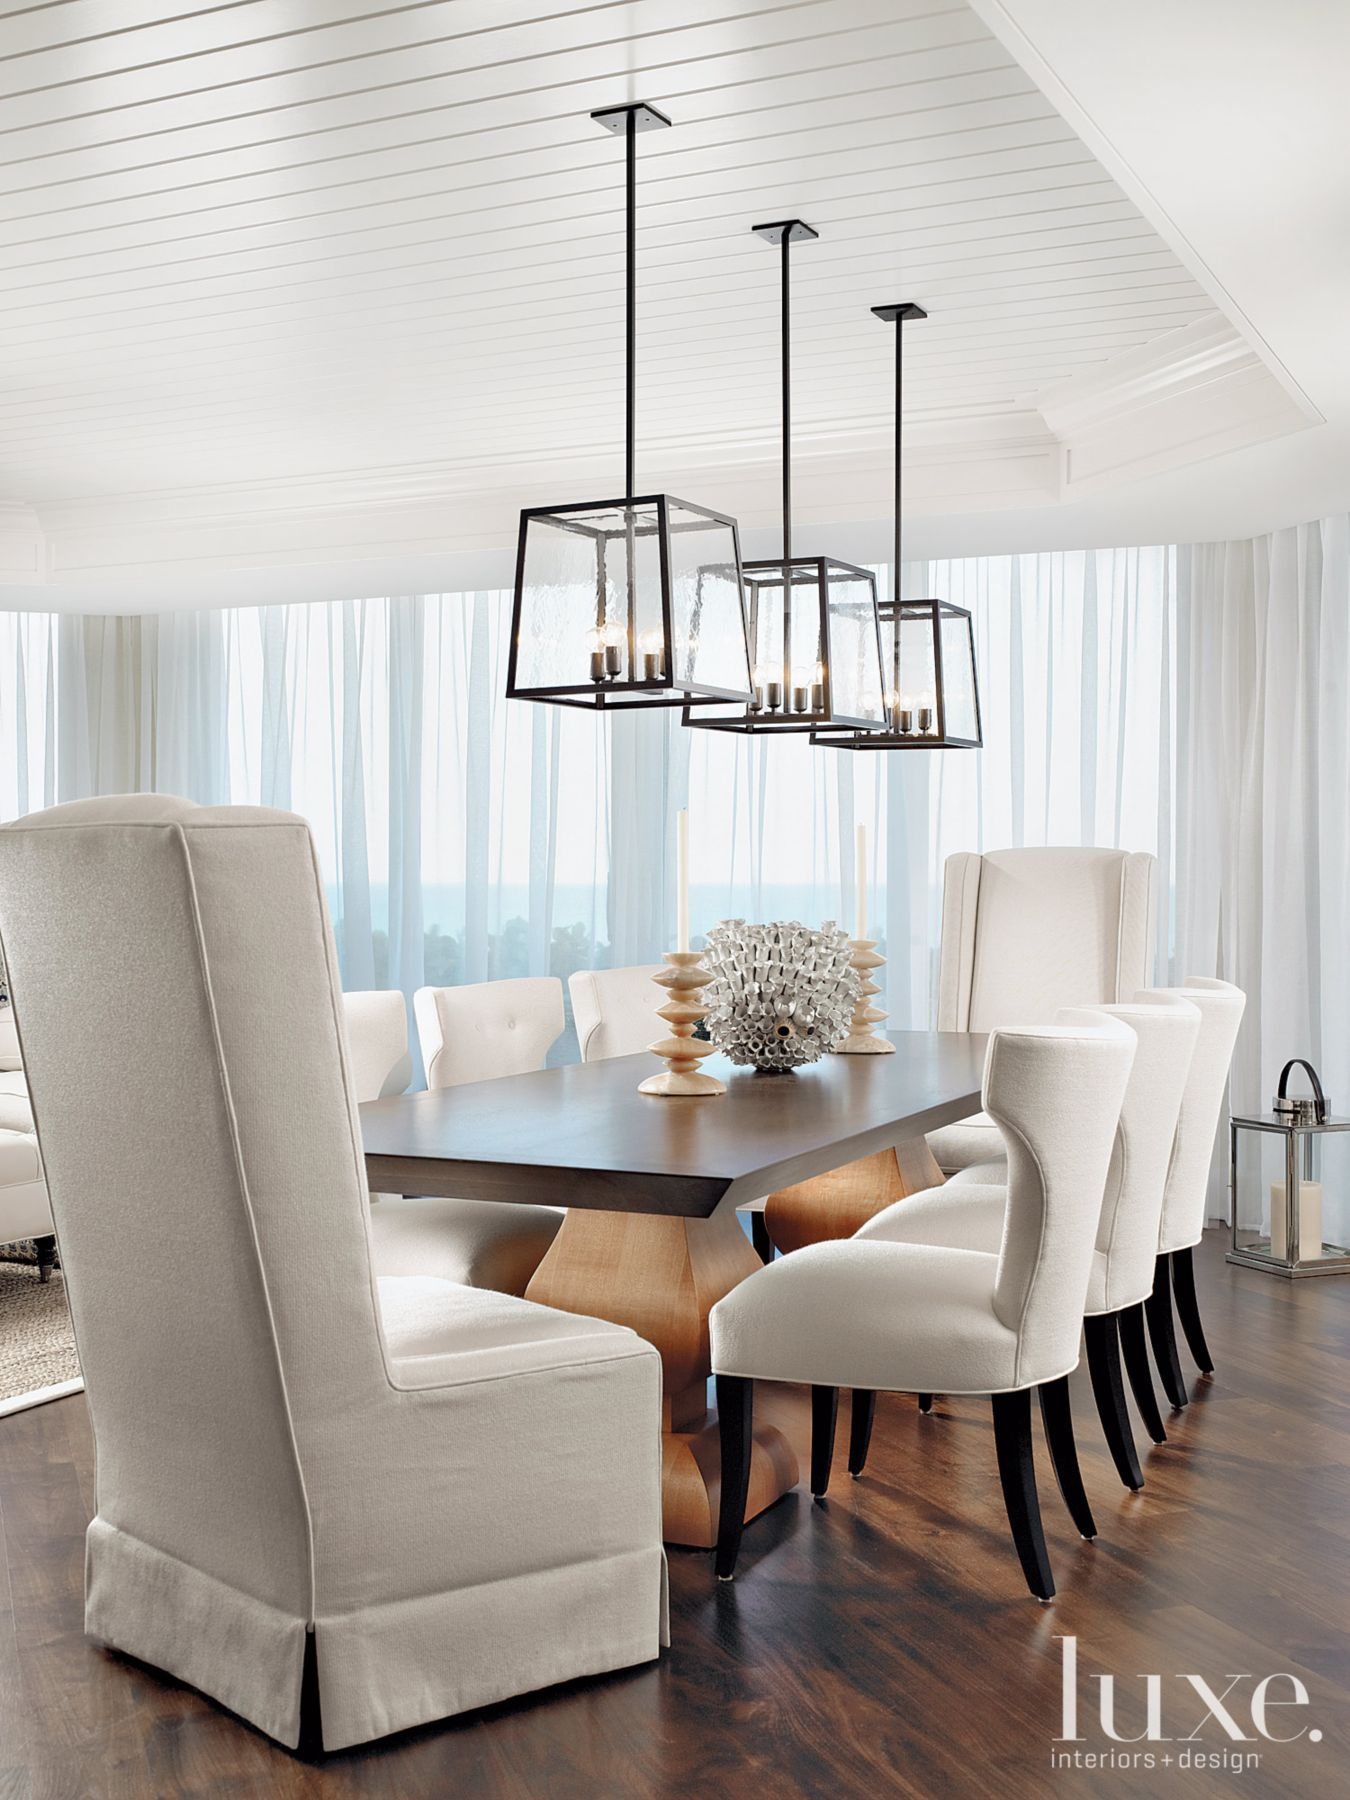 25 Stunning Light Fixtures  Luxesource  Luxe Magazine  The Classy Rectangular Dining Room Lighting Design Ideas